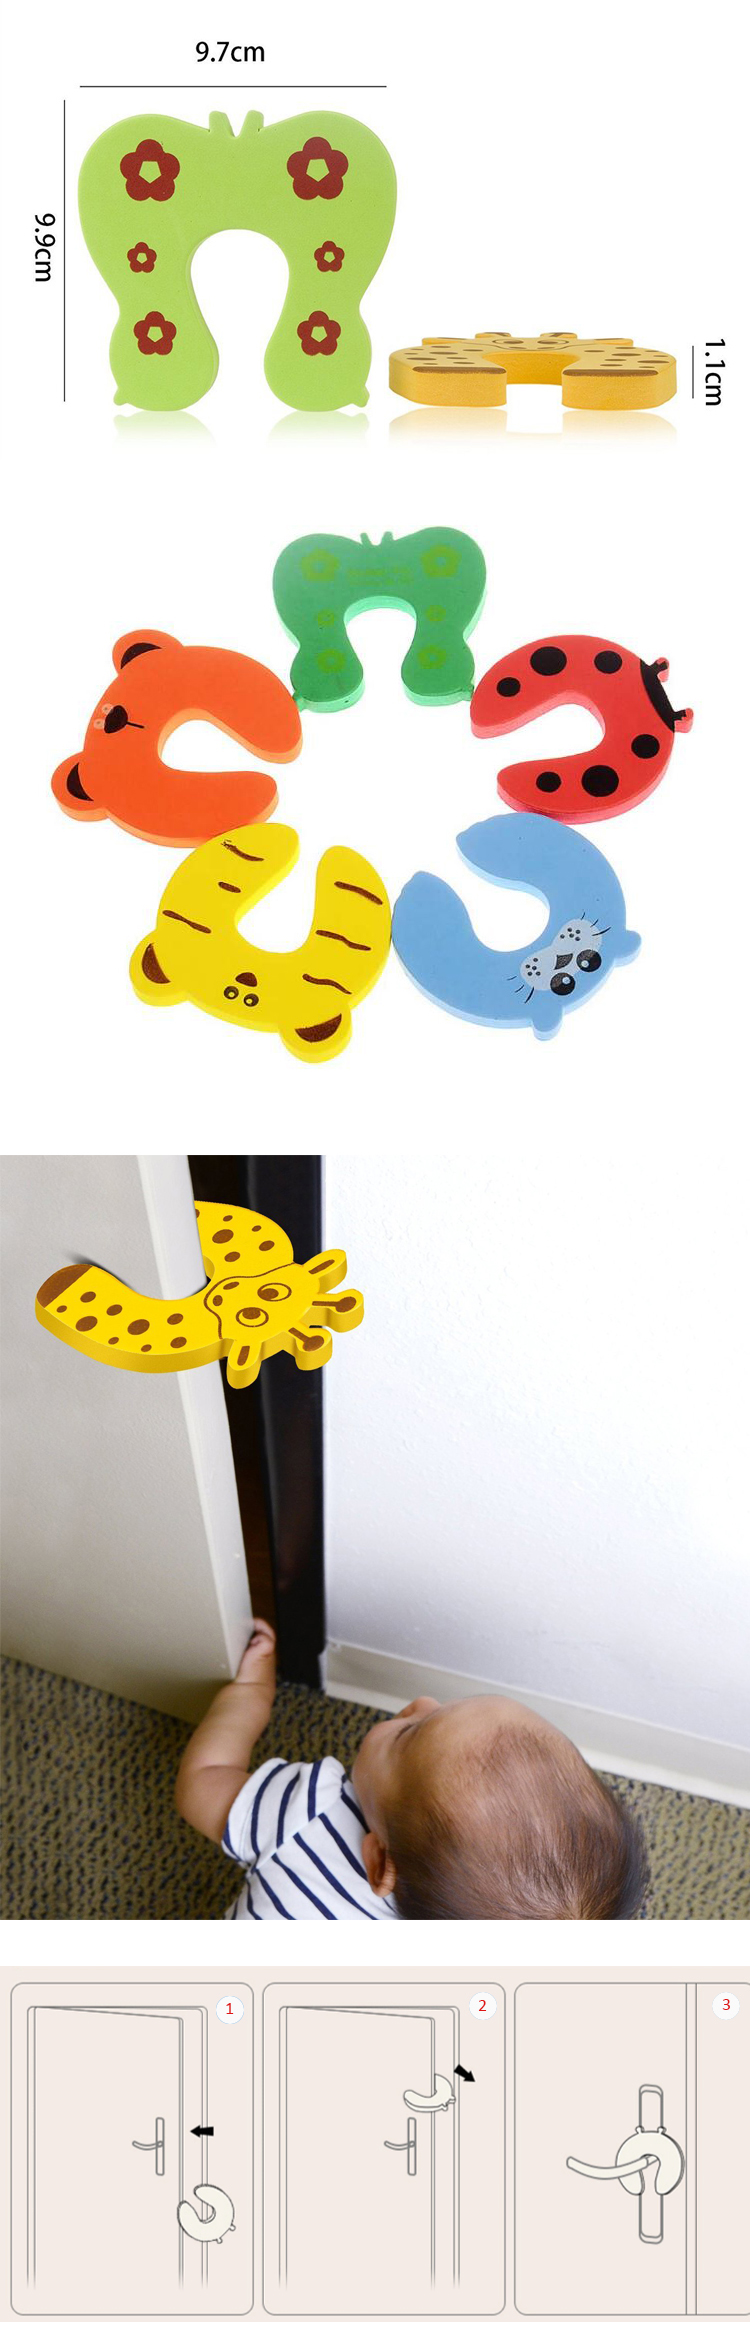 High Quality Baby Finger Guard Safety Eva Cute Door Stopper Eva Foam Door finger guard For Home Safety